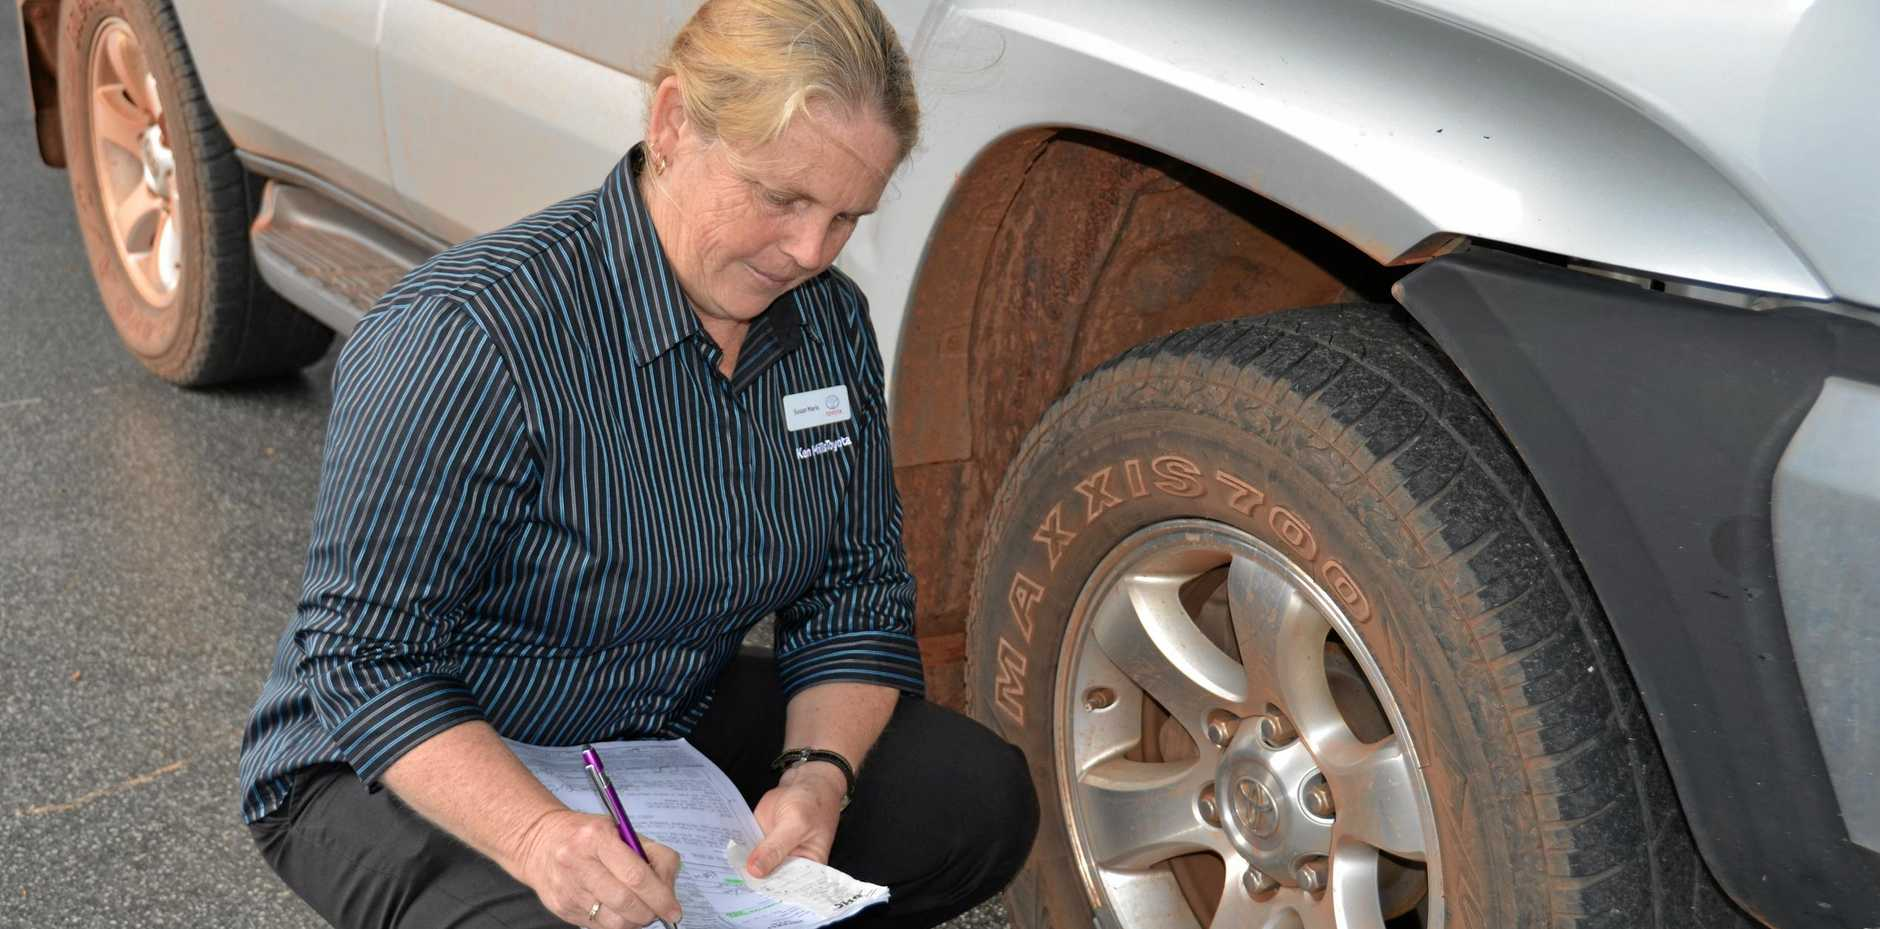 Susan Maris from Ken Mills Toyota inspecting a vehicle for maintenance.